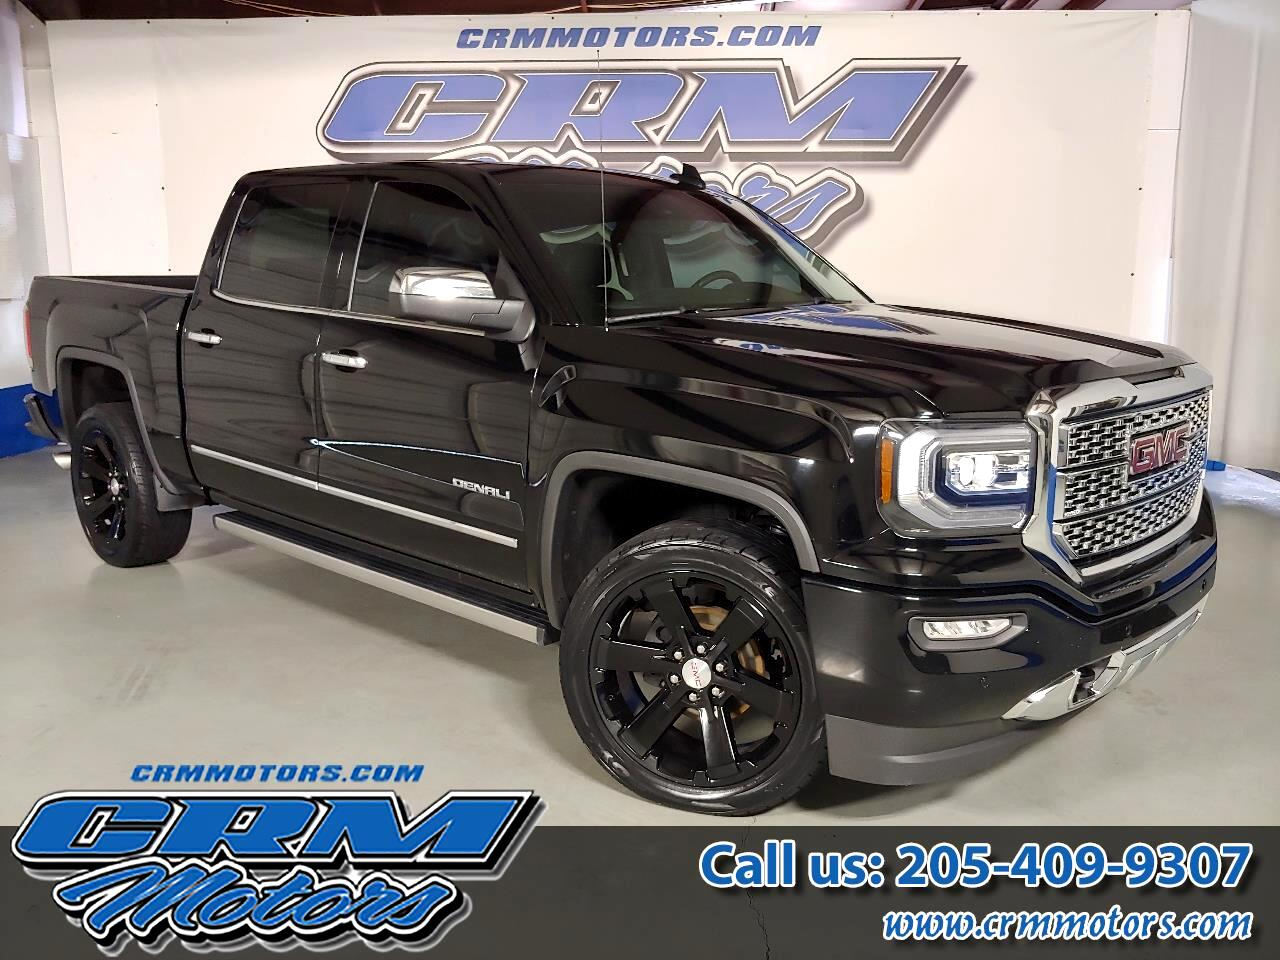 2016 GMC Sierra 1500 4WD CREW CAB DENALI, LOADED, EVERY OPTION!